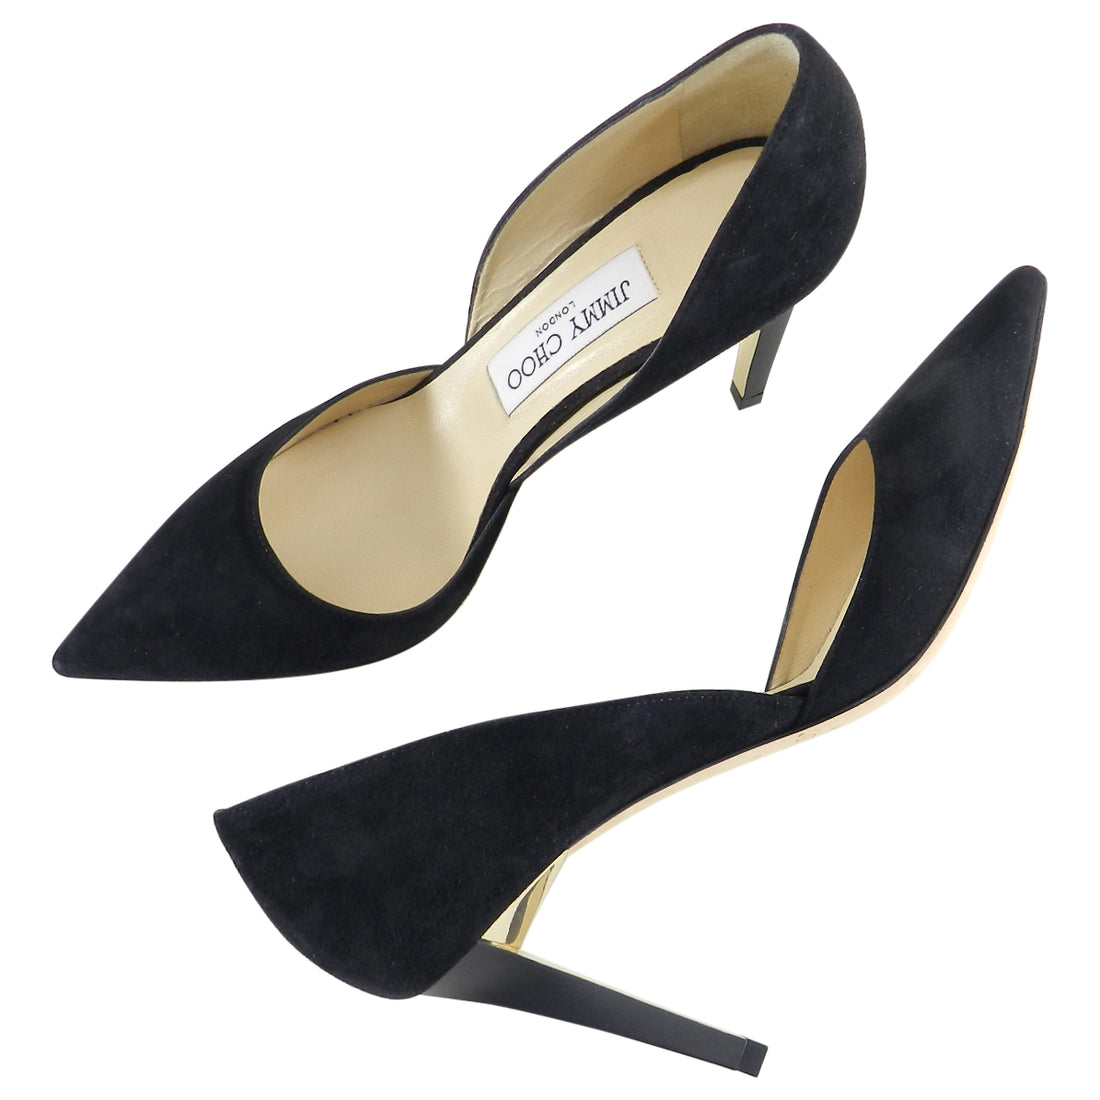 Jimmy Choo Black Suede Pumps with Gold Heel - 36.5